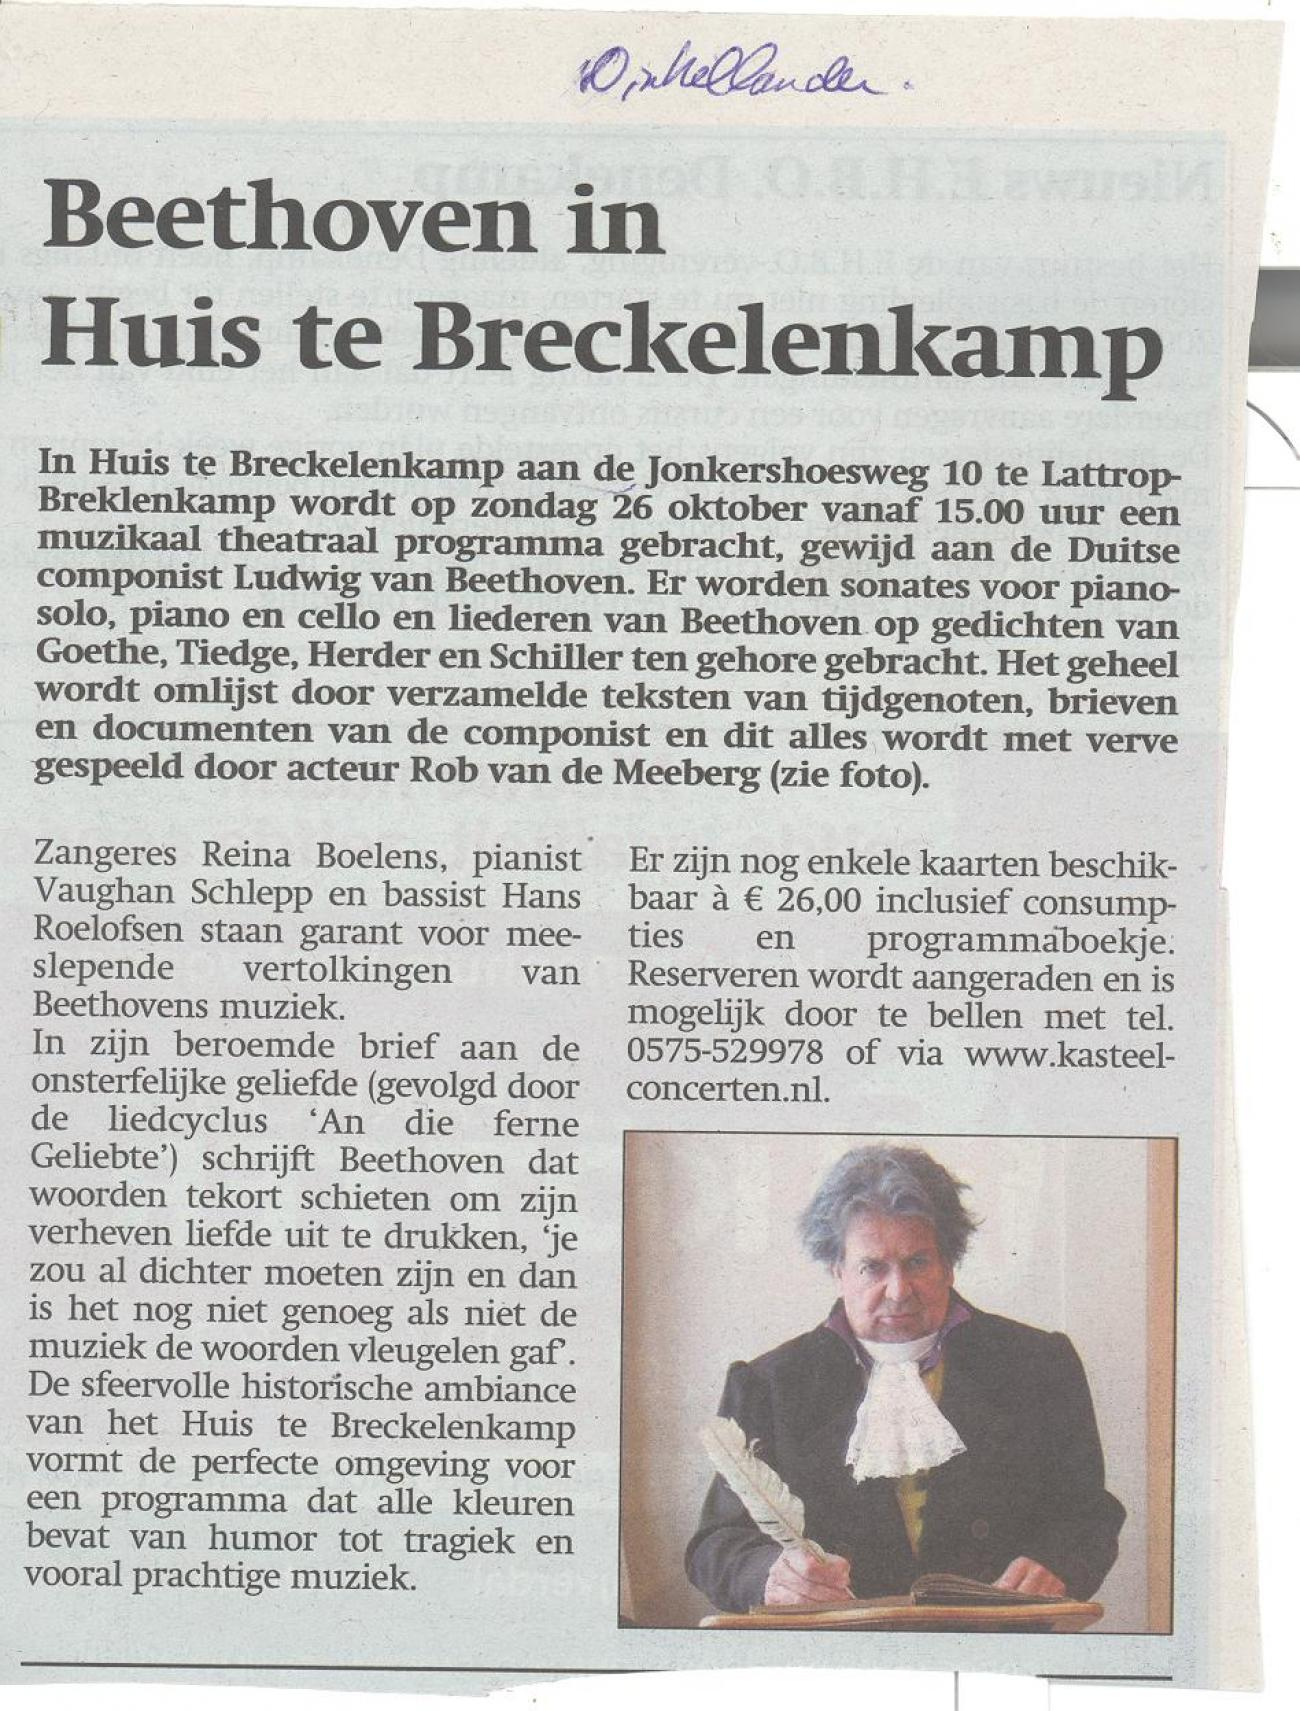 Beethoven in Huis te Breckelenkamp